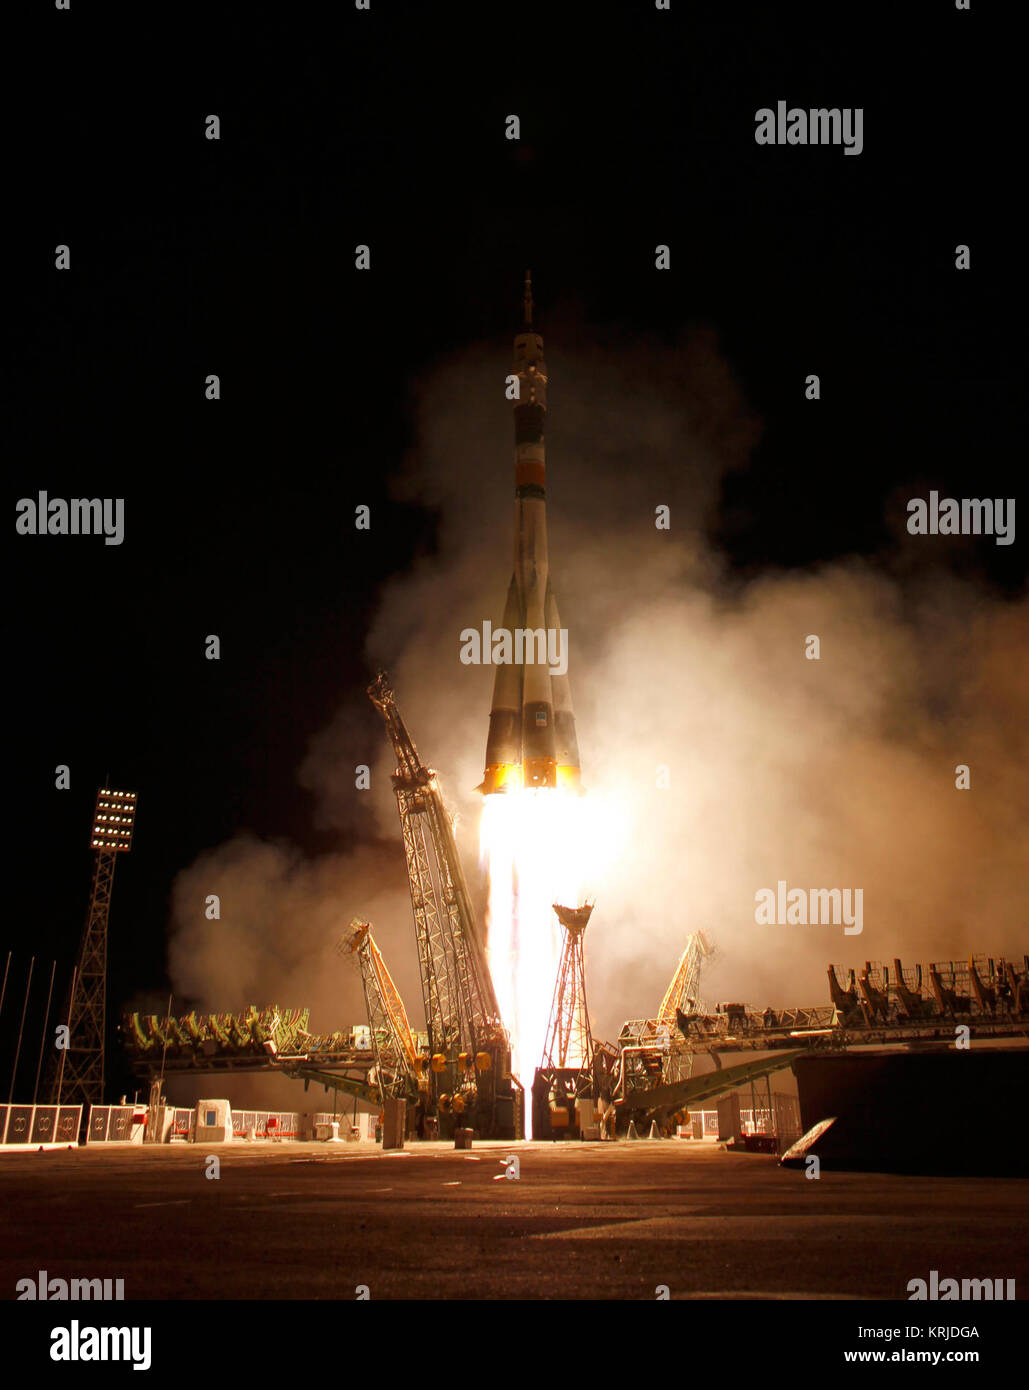 The Soyuz TMA-21 launches from the Baikonur Cosmodrome in Kazakhstan on Tuesday, April 5, 2011 carrying Expedition - Stock Image